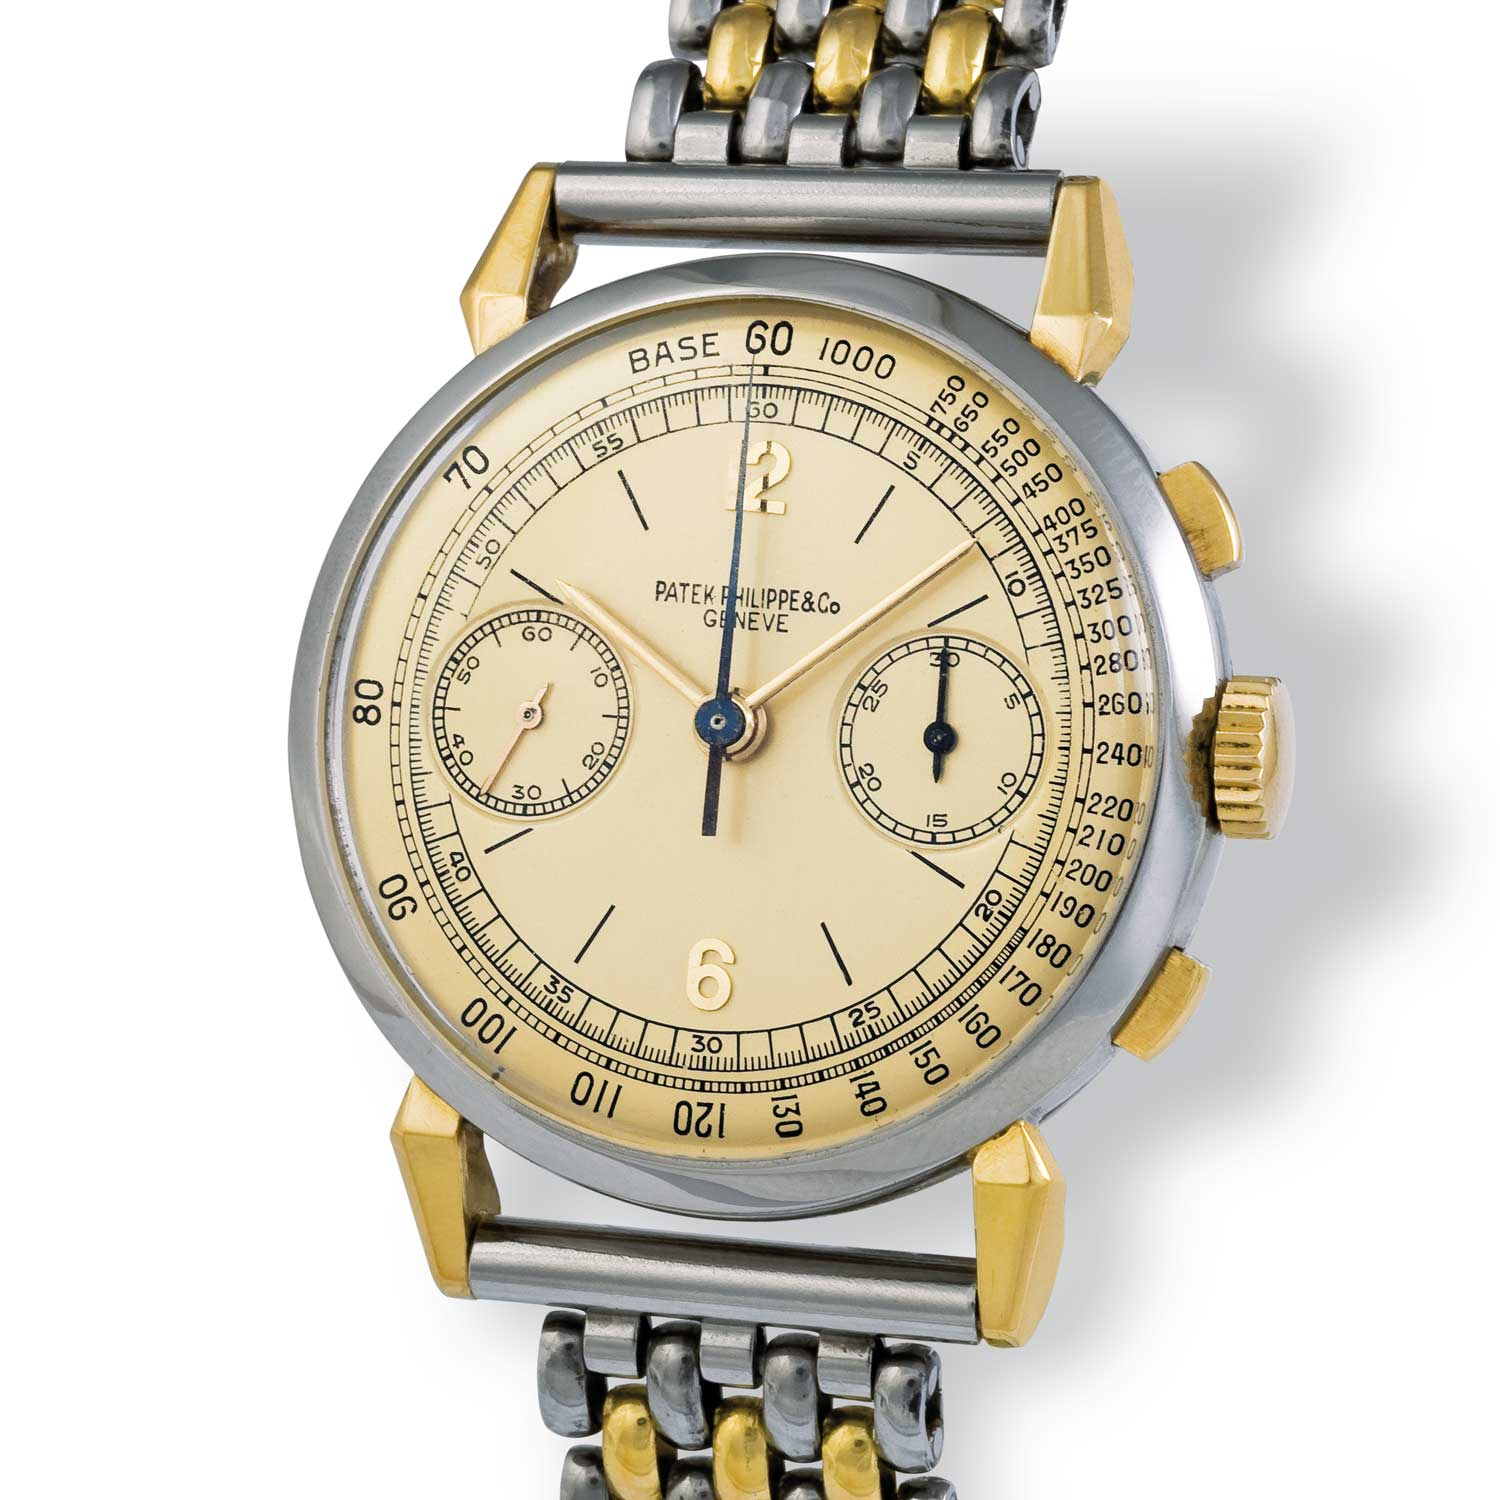 """Patek Philippe ref. 1579 gold and steel chronograph with Arabic numerals fitted on a Gay Frères """"grains of rice"""" bracelet adored on the gold spider lugs of the timepiece (Image: John Goldberger)"""